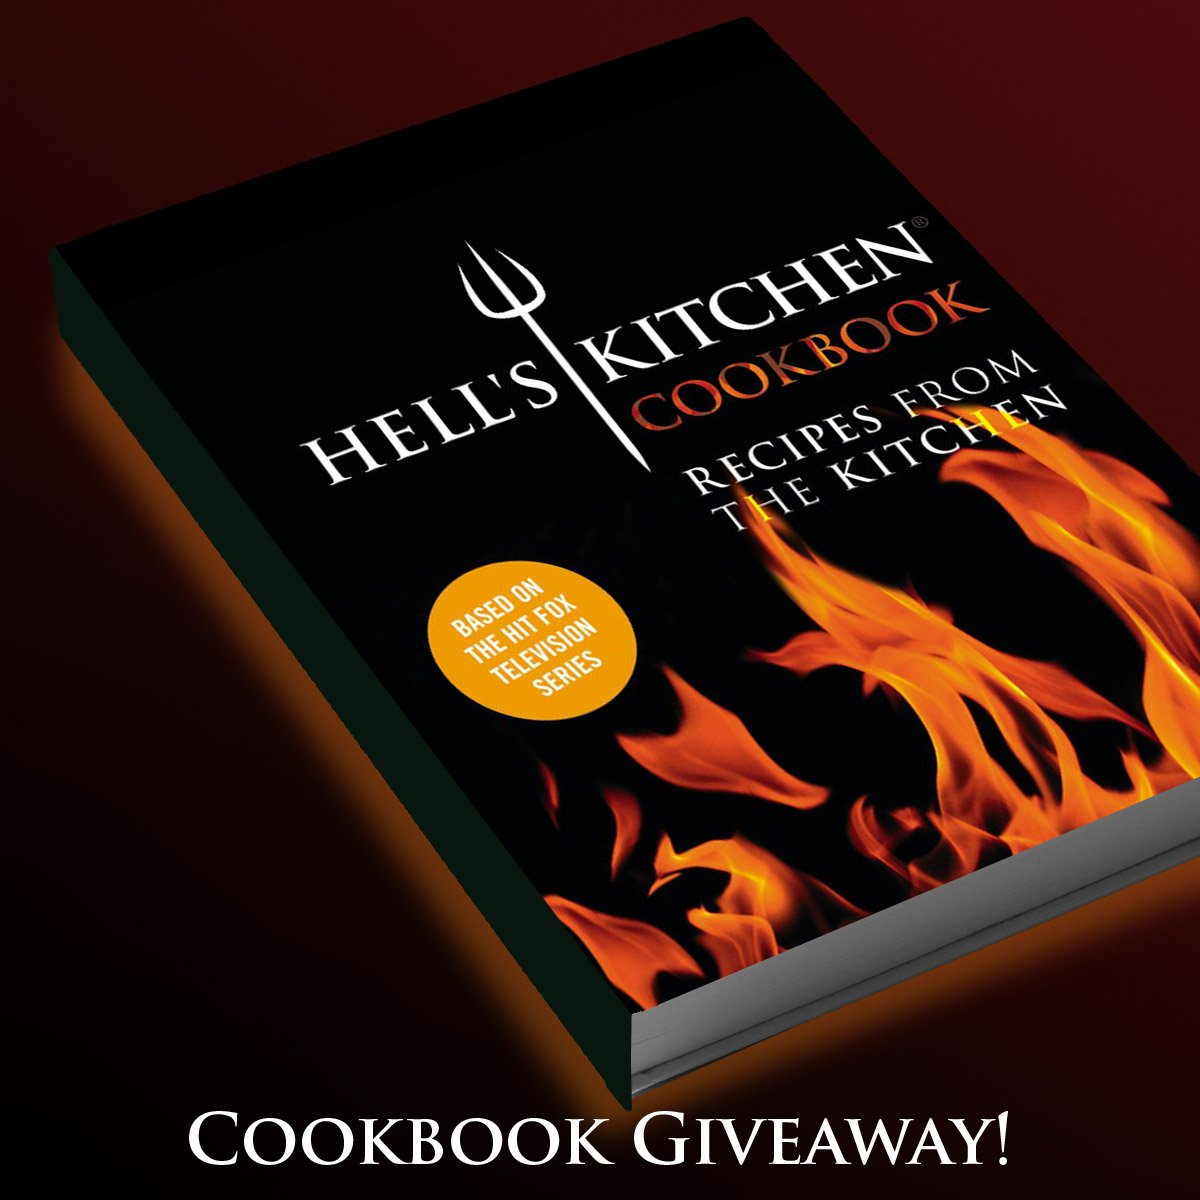 Want a @HellsKitchenFOX Cookbook? Here's your chance to win one! https://t.co/igtrP9tpRc #HellsKitchen https://t.co/3m2YQZm7sO